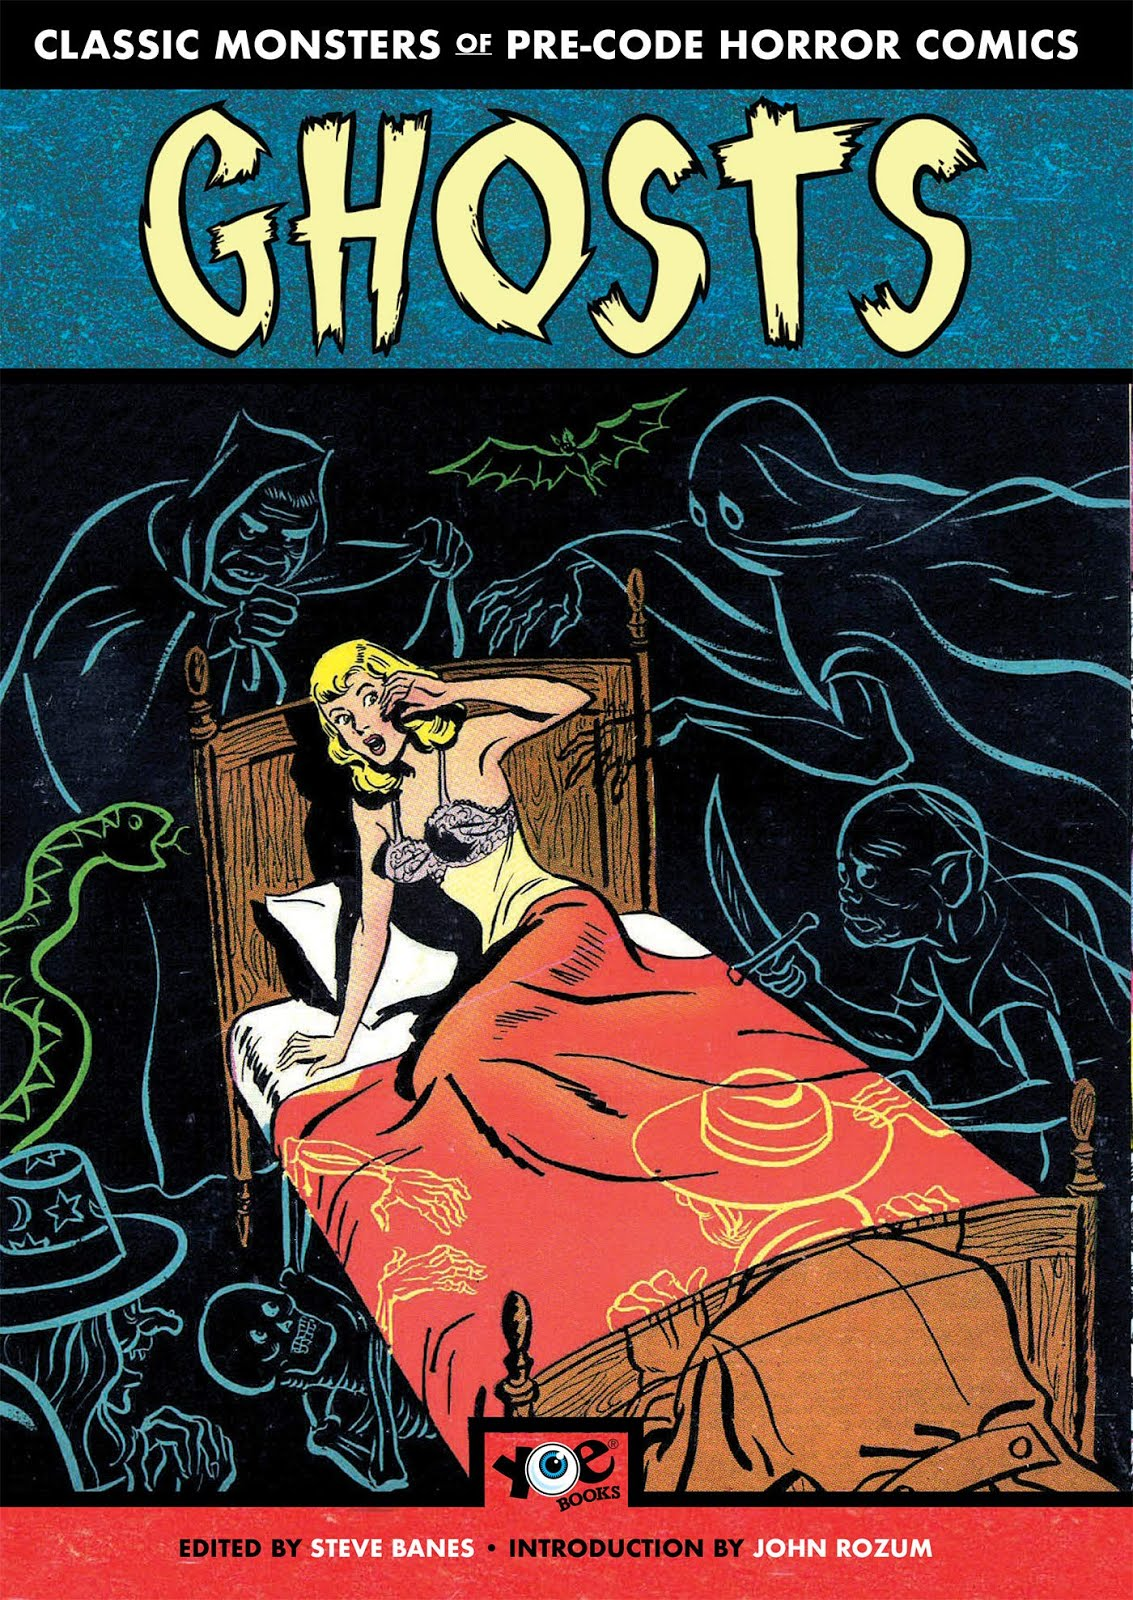 GHOSTS: Classic Monsters of Pre-Code Horror Comics Paperback (Edited by Steve Banes)